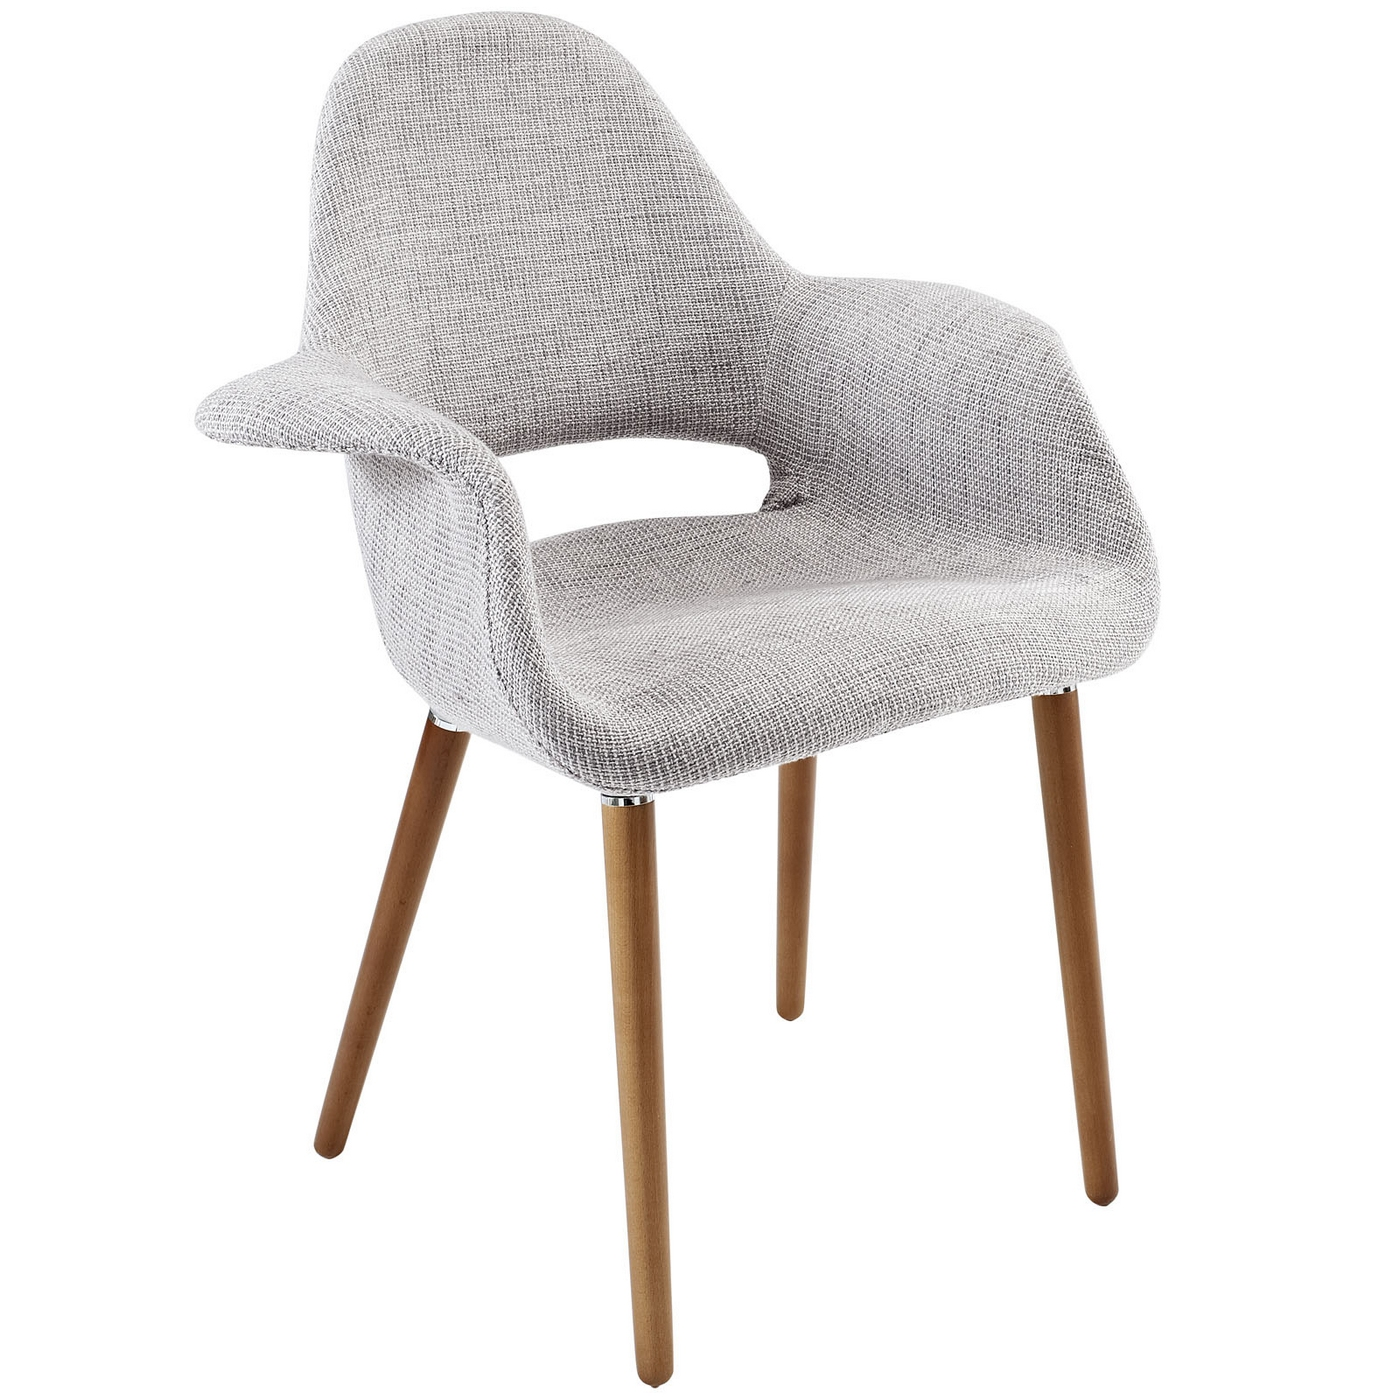 Aegis mid century modern upholstered dining armchair w